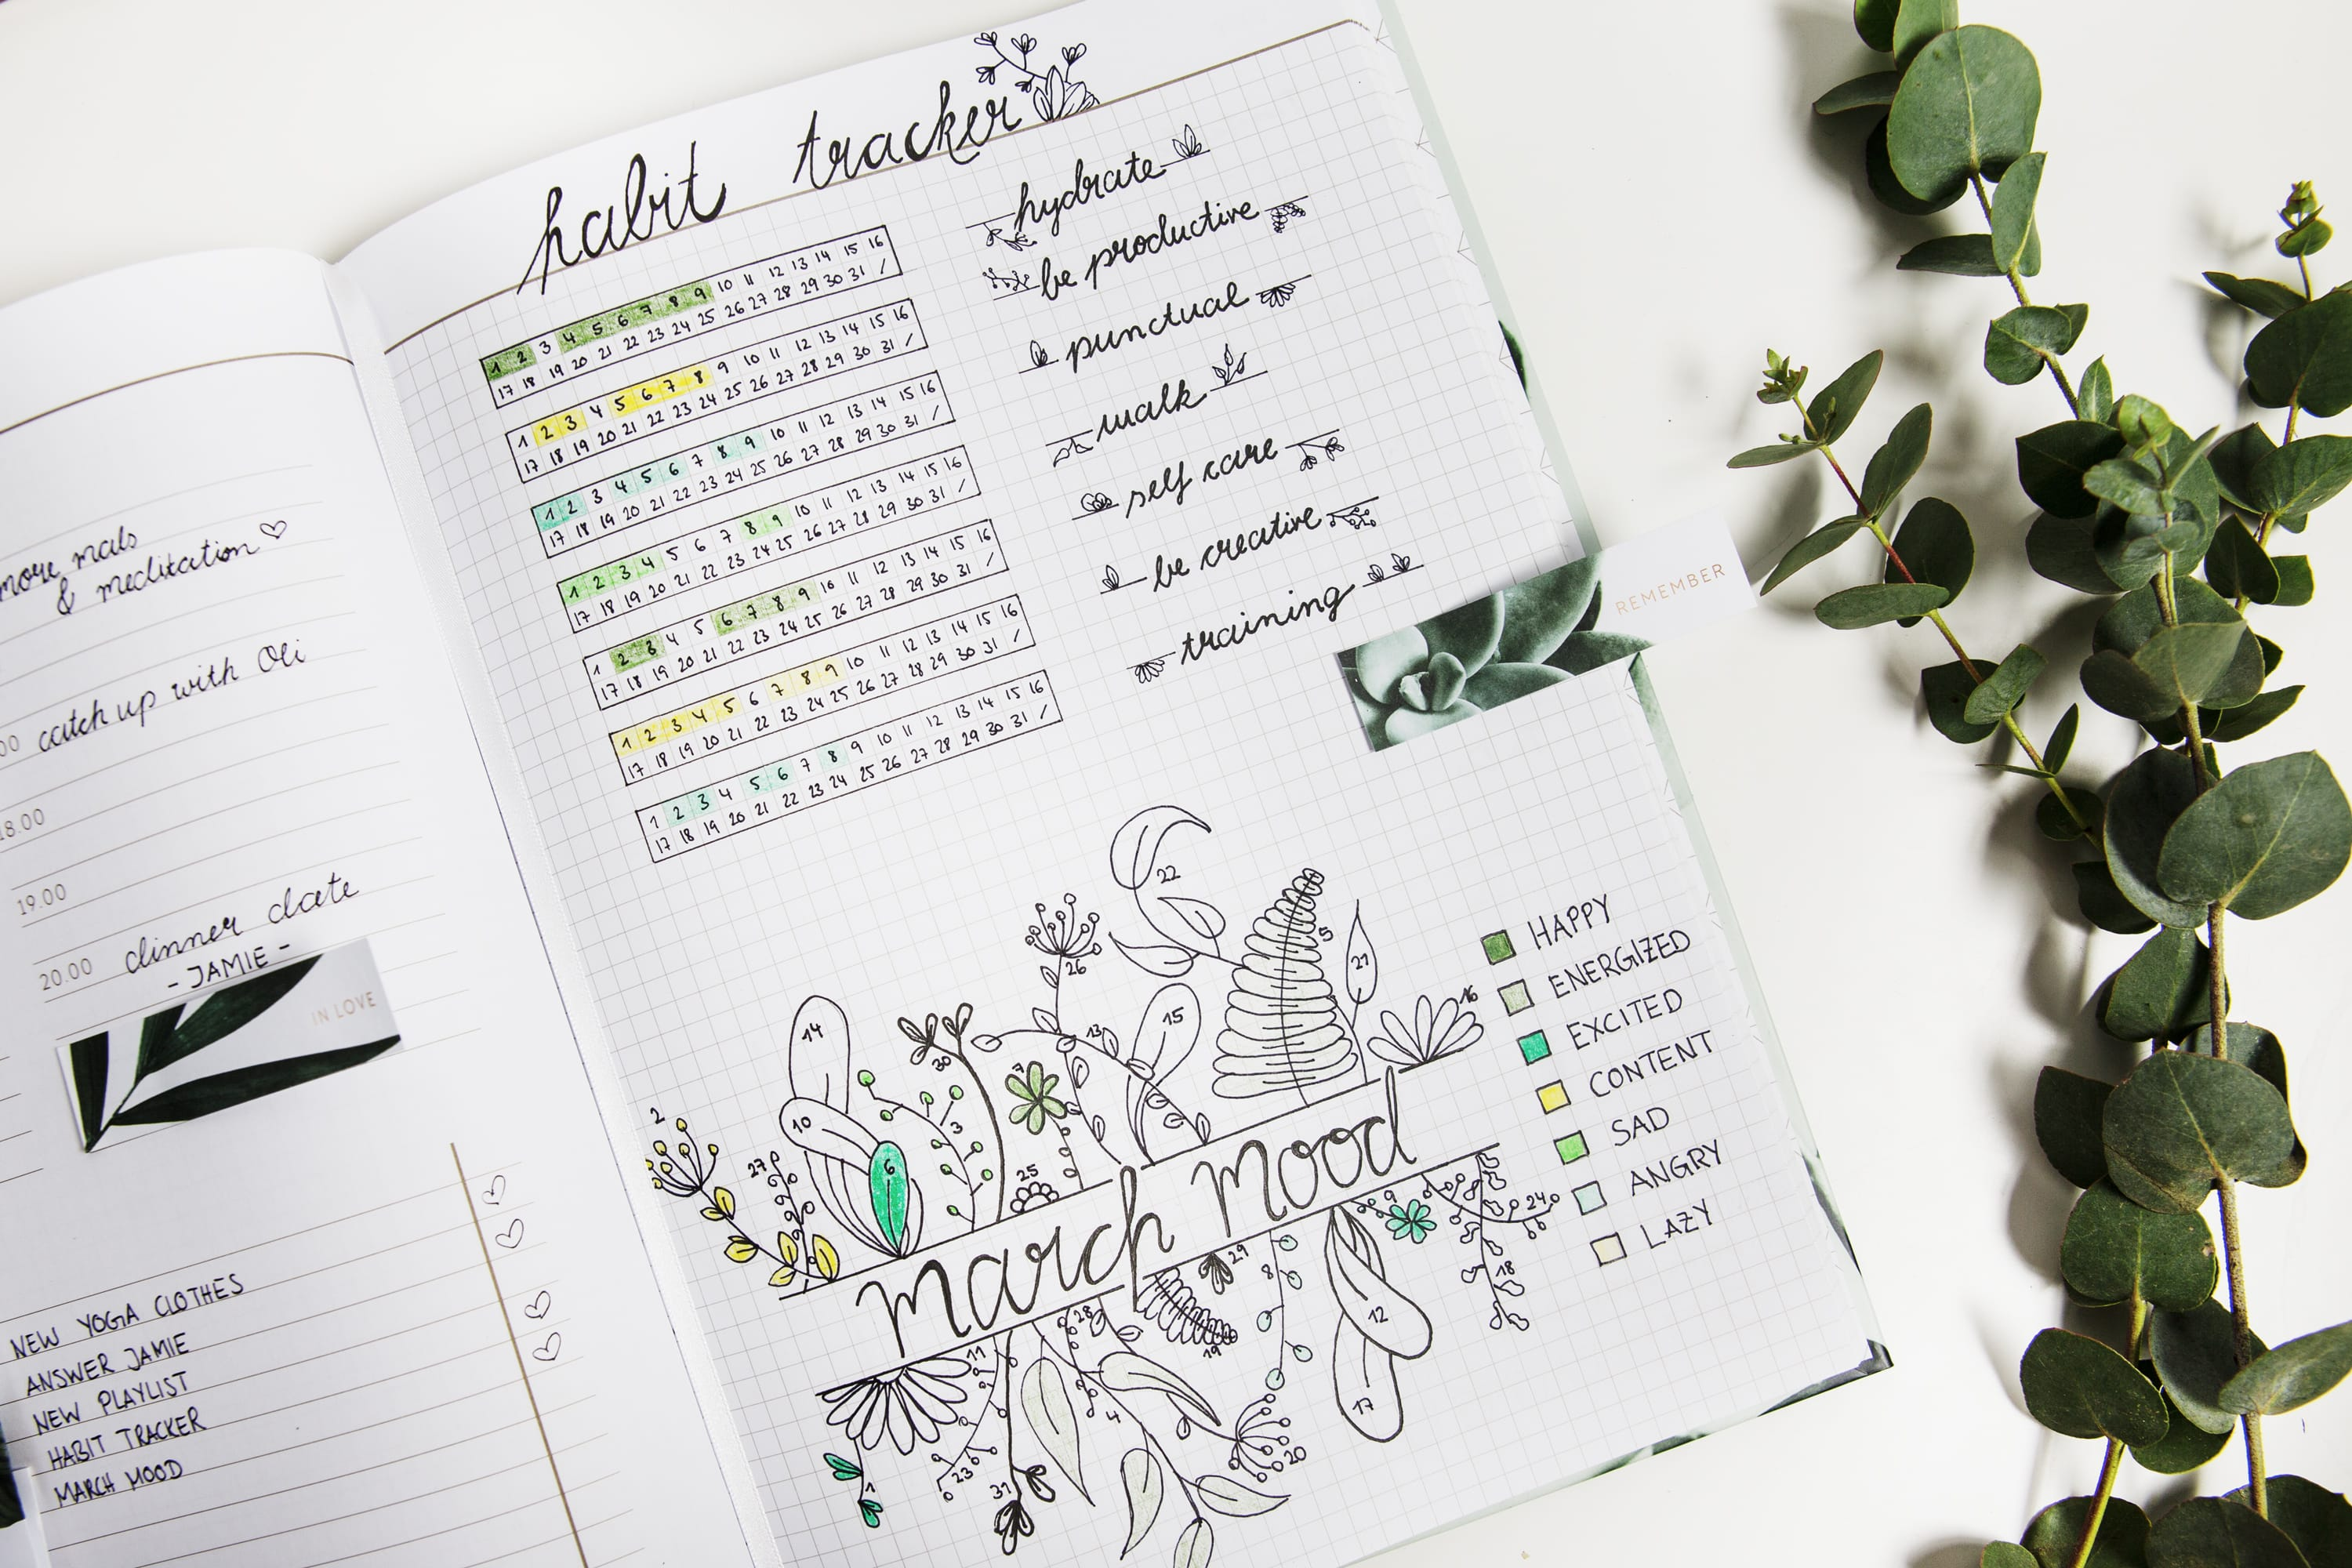 JO_and_JUDY_Blog_Daily_Planner_green_045aa13d601d85e